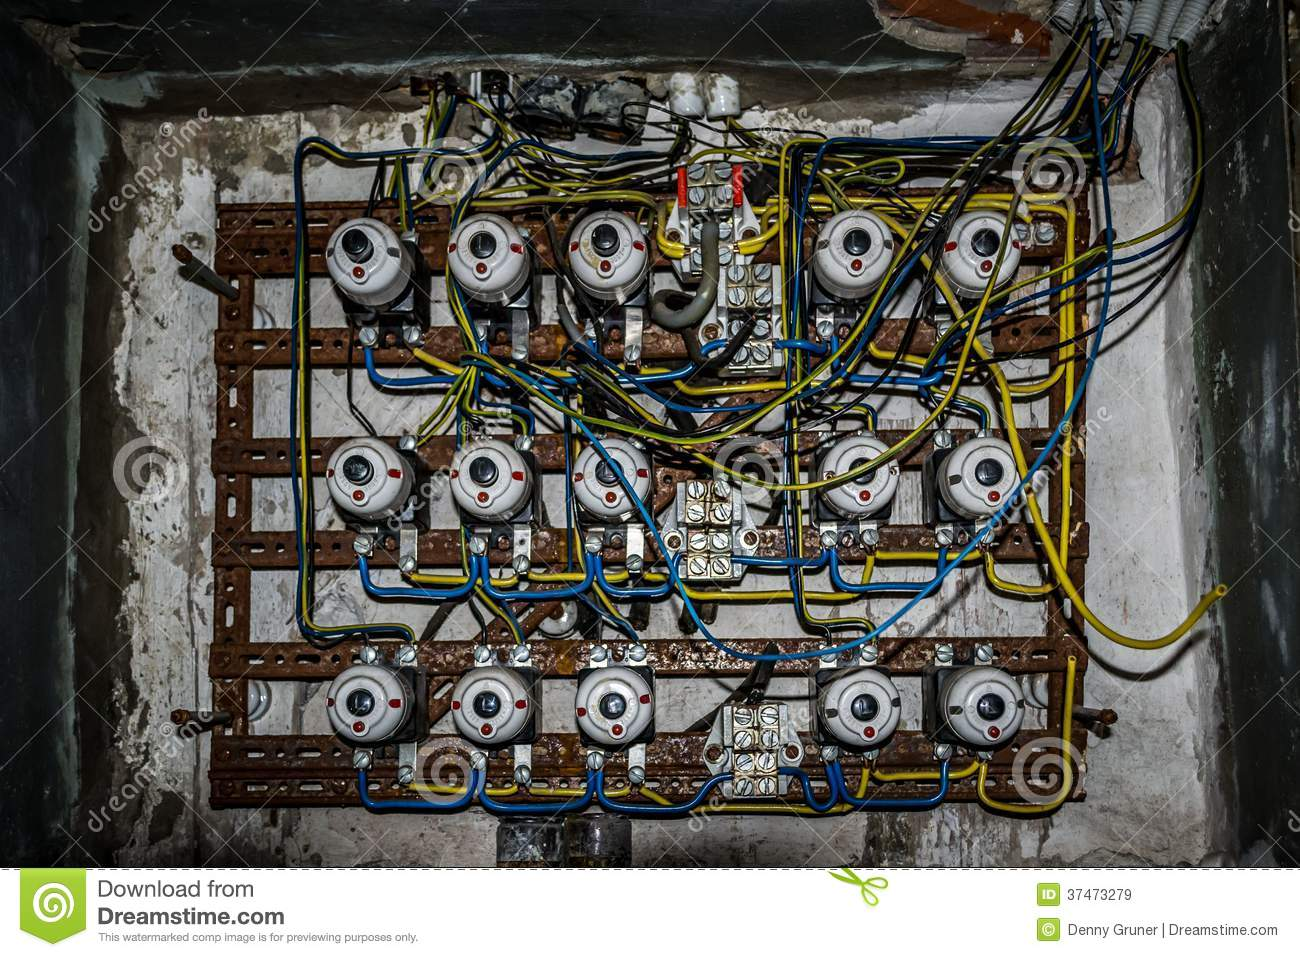 old fuse box royalty free stock images - image: 37473279 old household fuse box old time fuse box